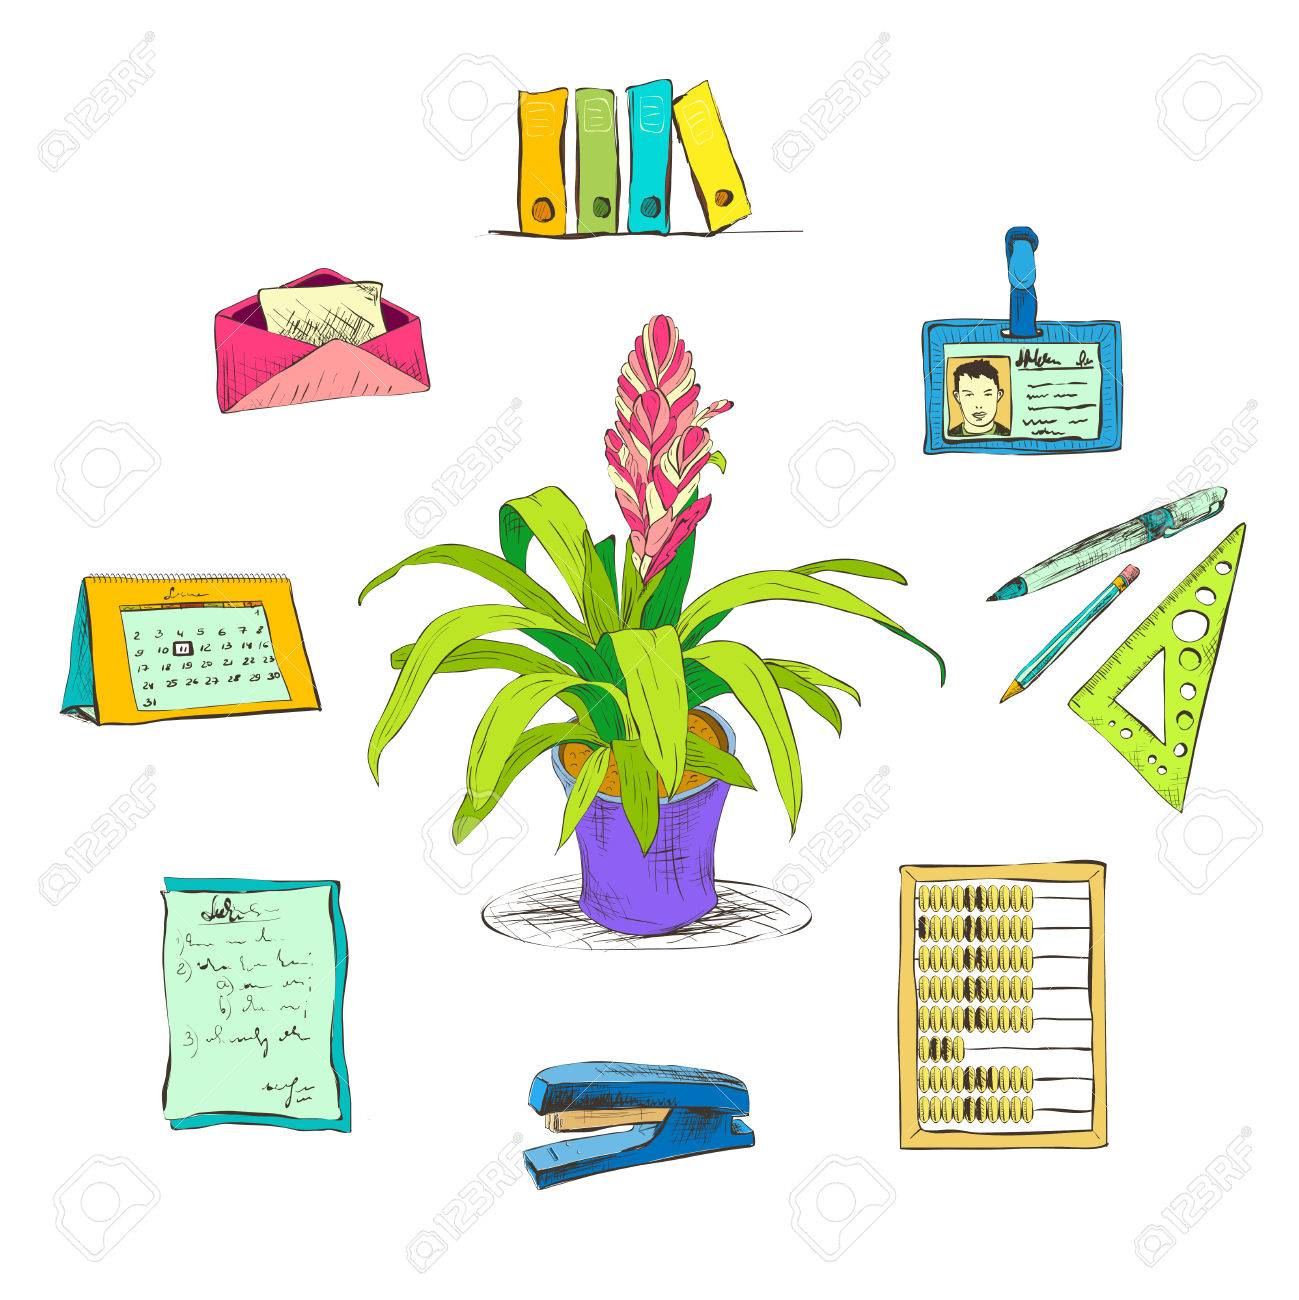 decorative office supplies. Business Office Stationery Supplies Icons Set With Decorative Desktop Flower Plant Isolated Sketch Illustration Stock Vector I